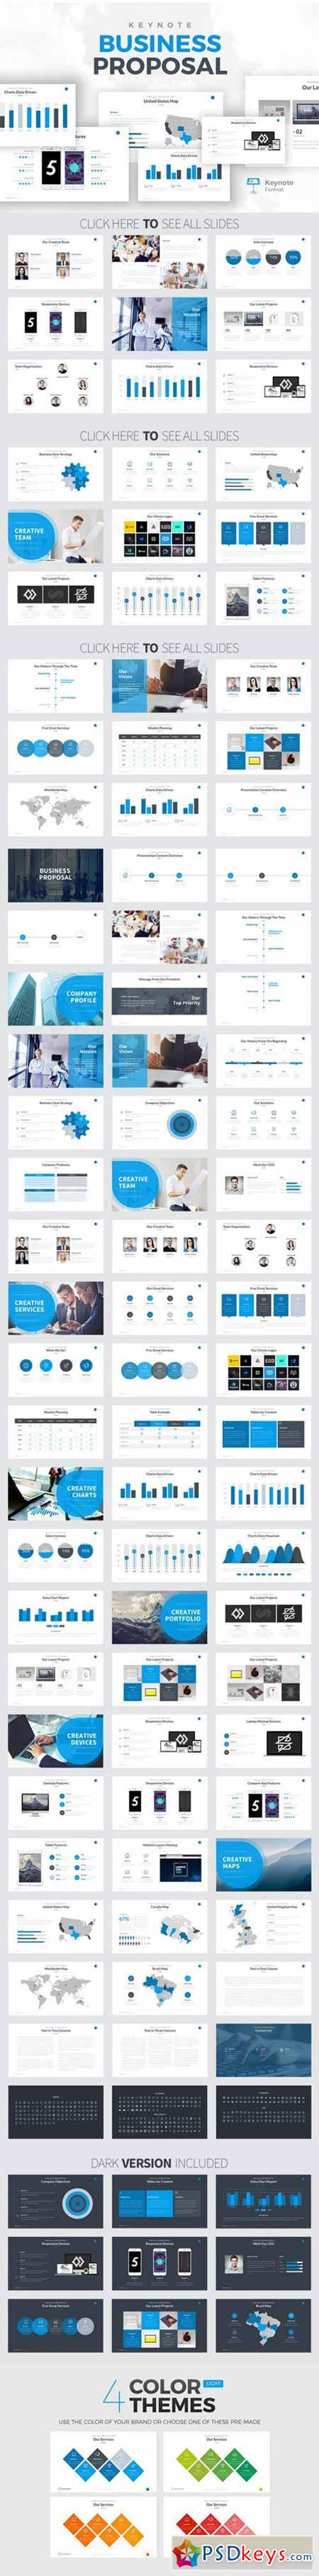 Business Proposal Keynote Template 575438